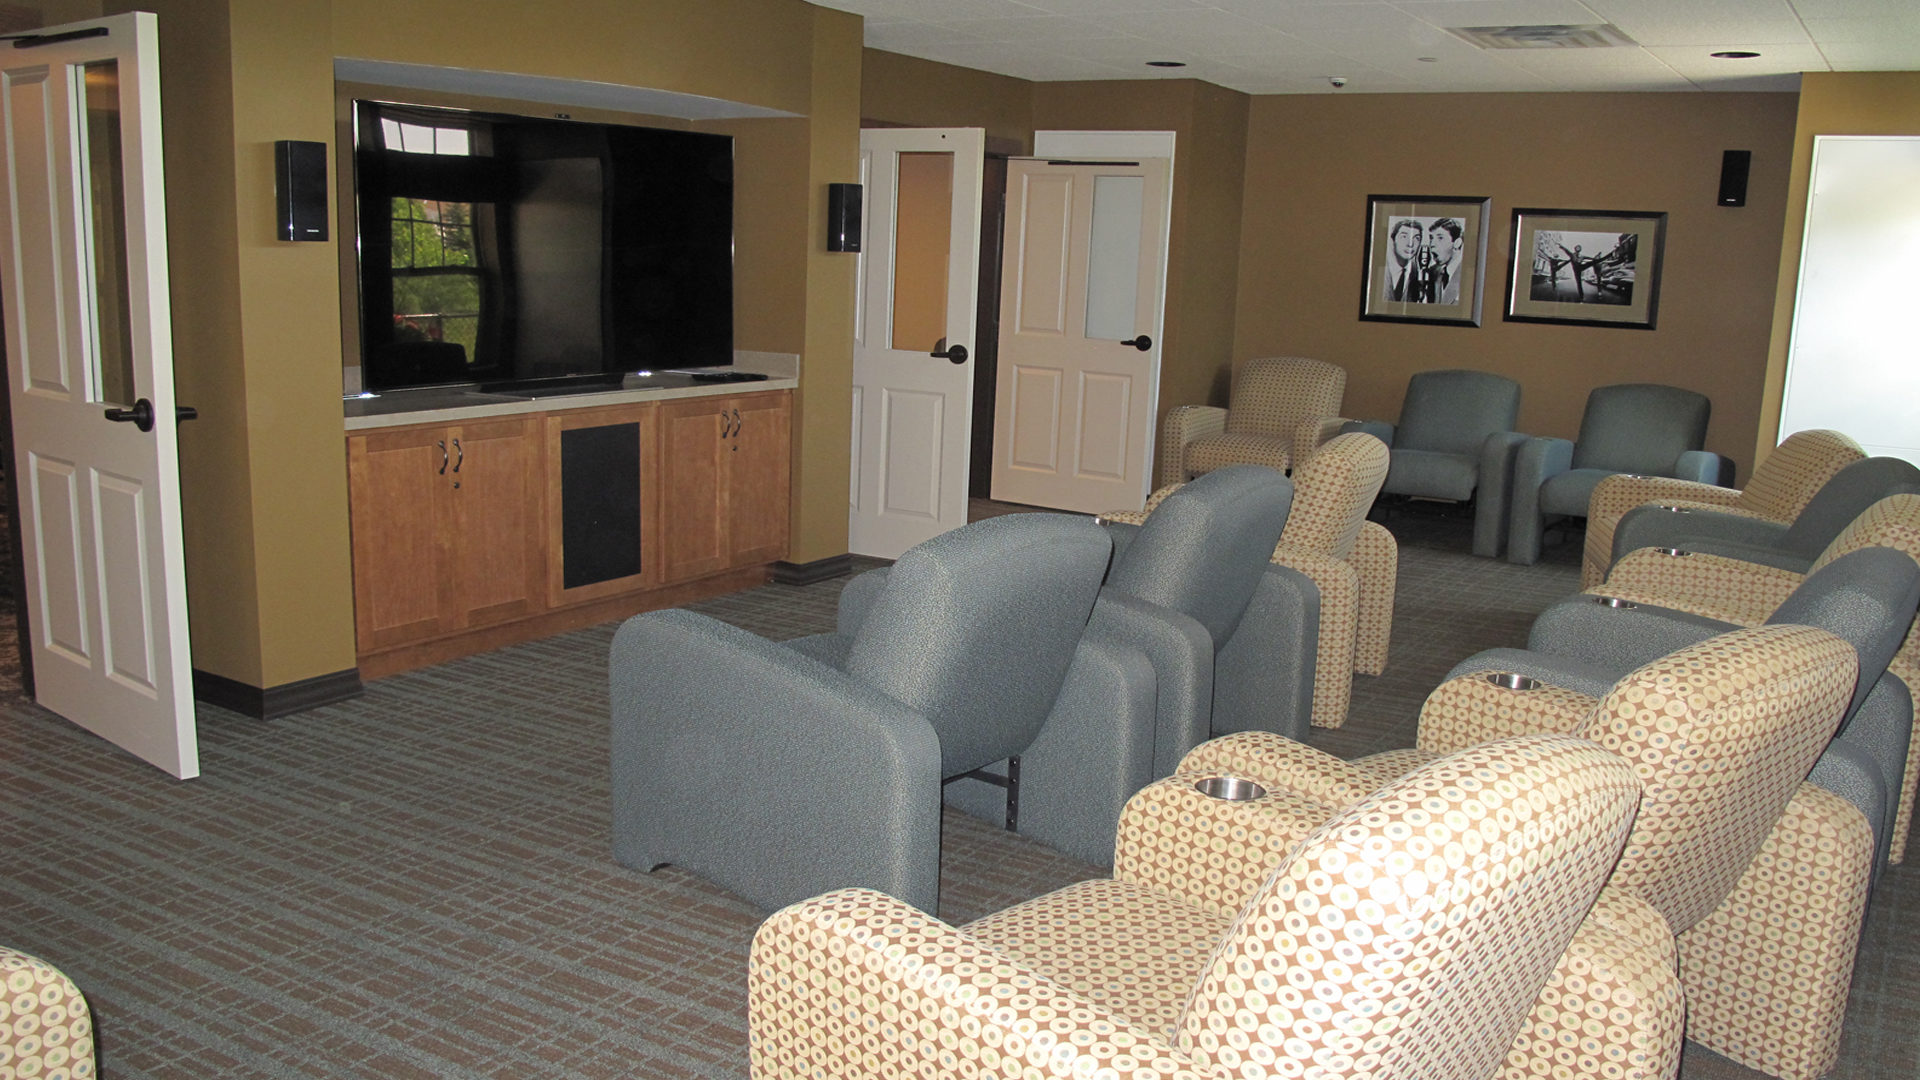 Ebenezer Arbors at Ridges Senior Assisted Living Interior Theater Room